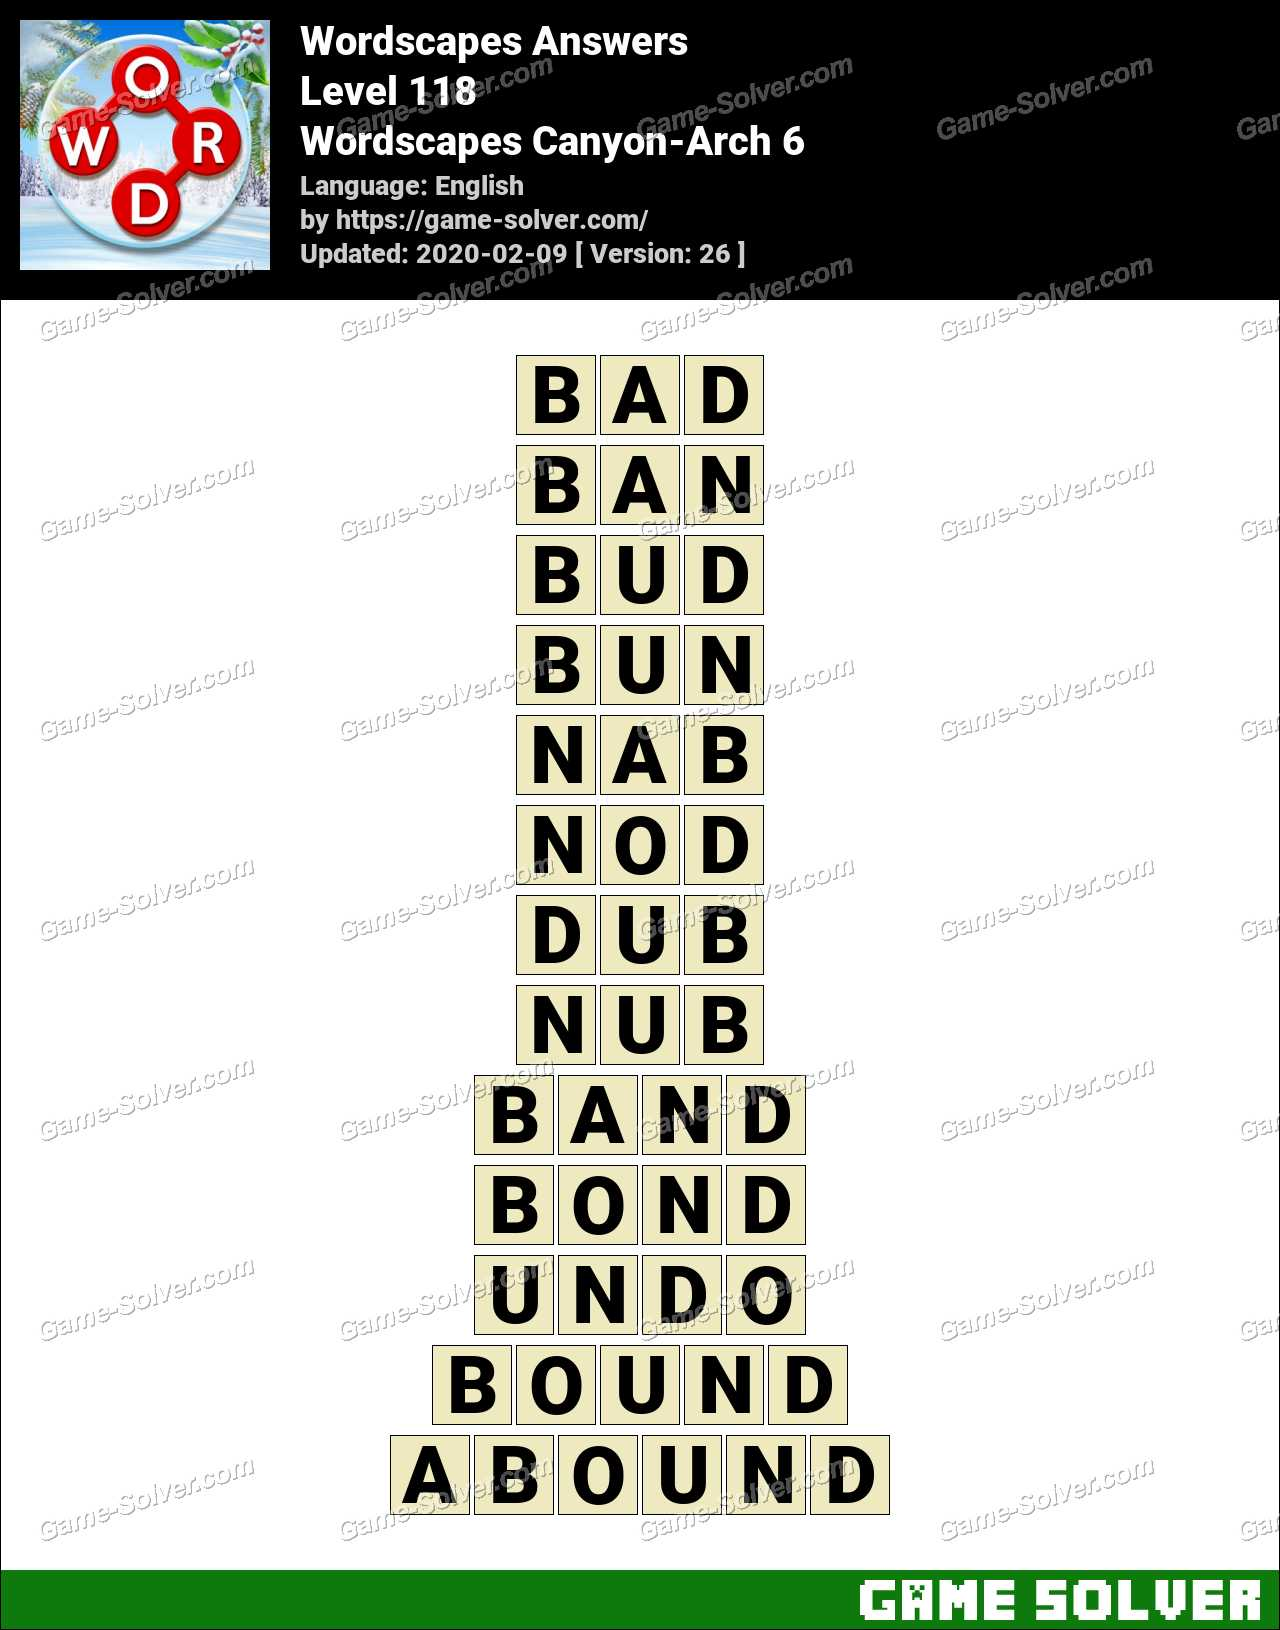 Wordscapes Canyon Arch 6 Answers Game Solver